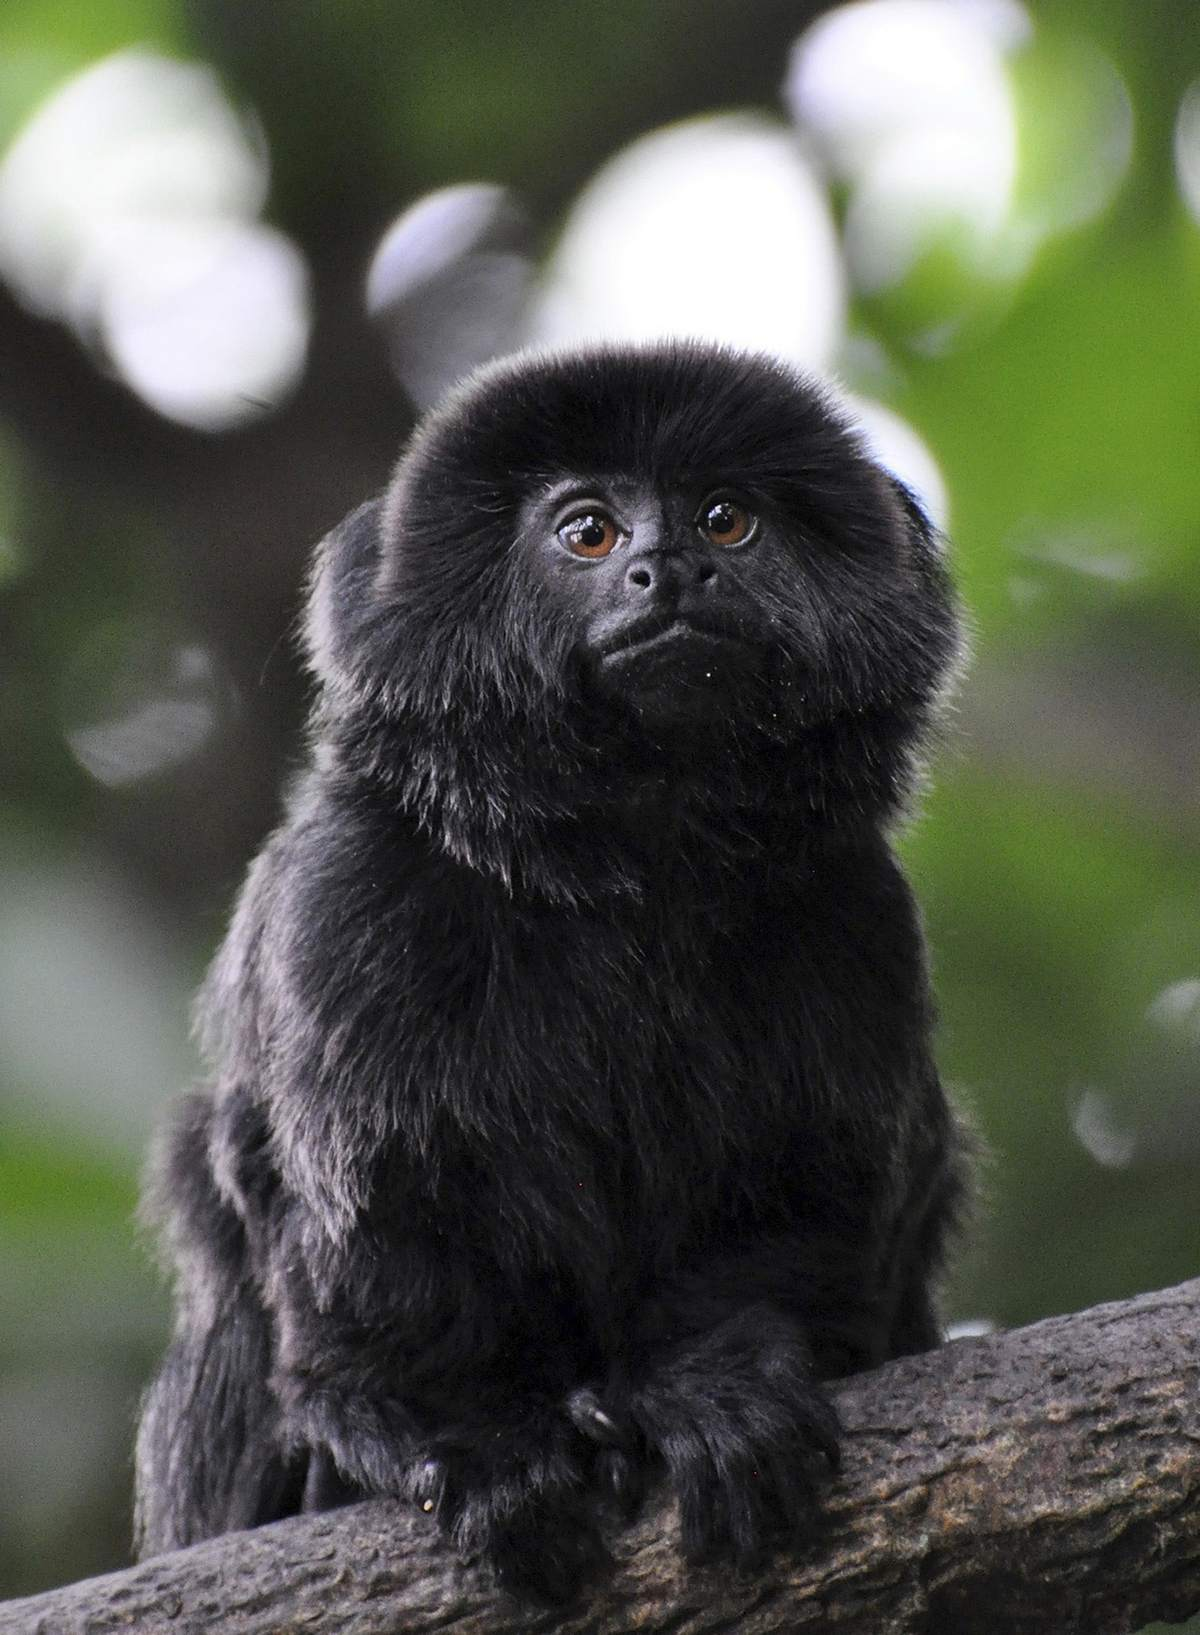 Police recover Kali, a rare Goeldi's monkey stolen from